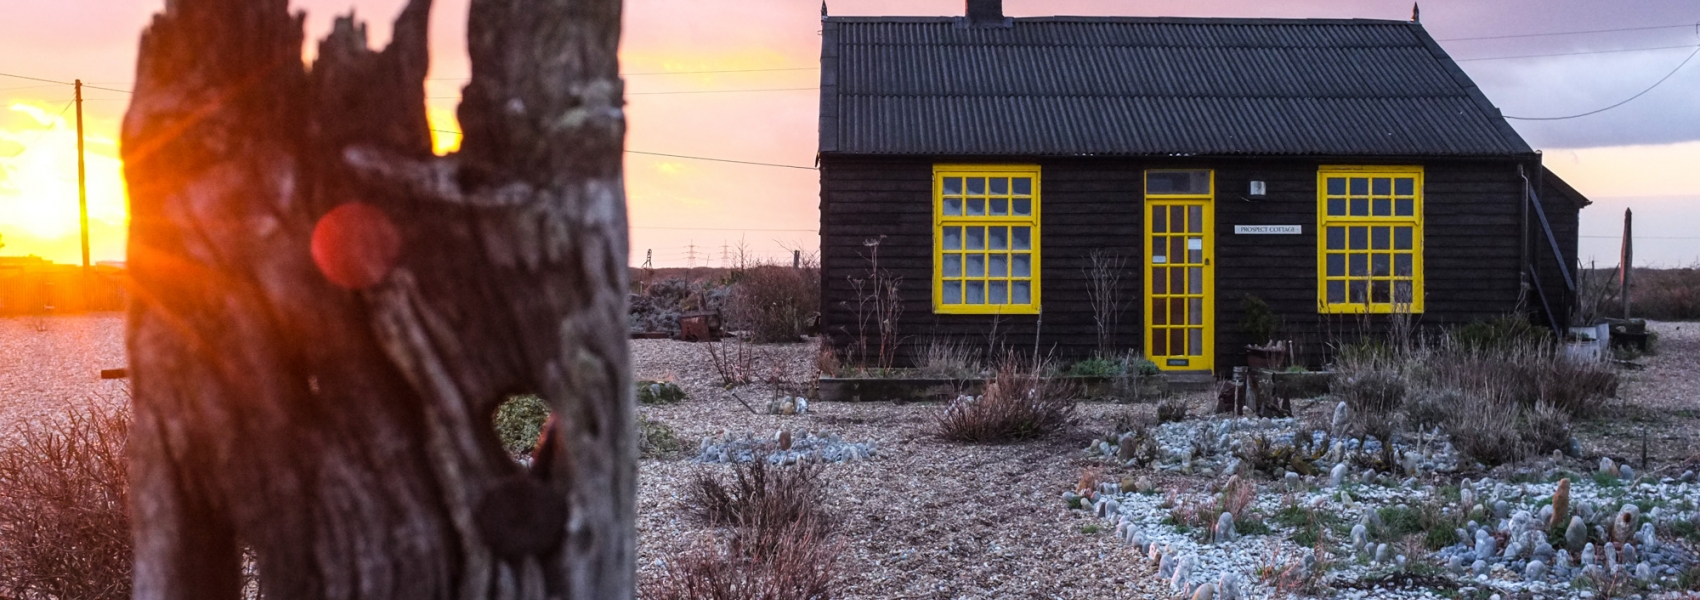 Derek Jarman | A weekend at Prospect Cottage